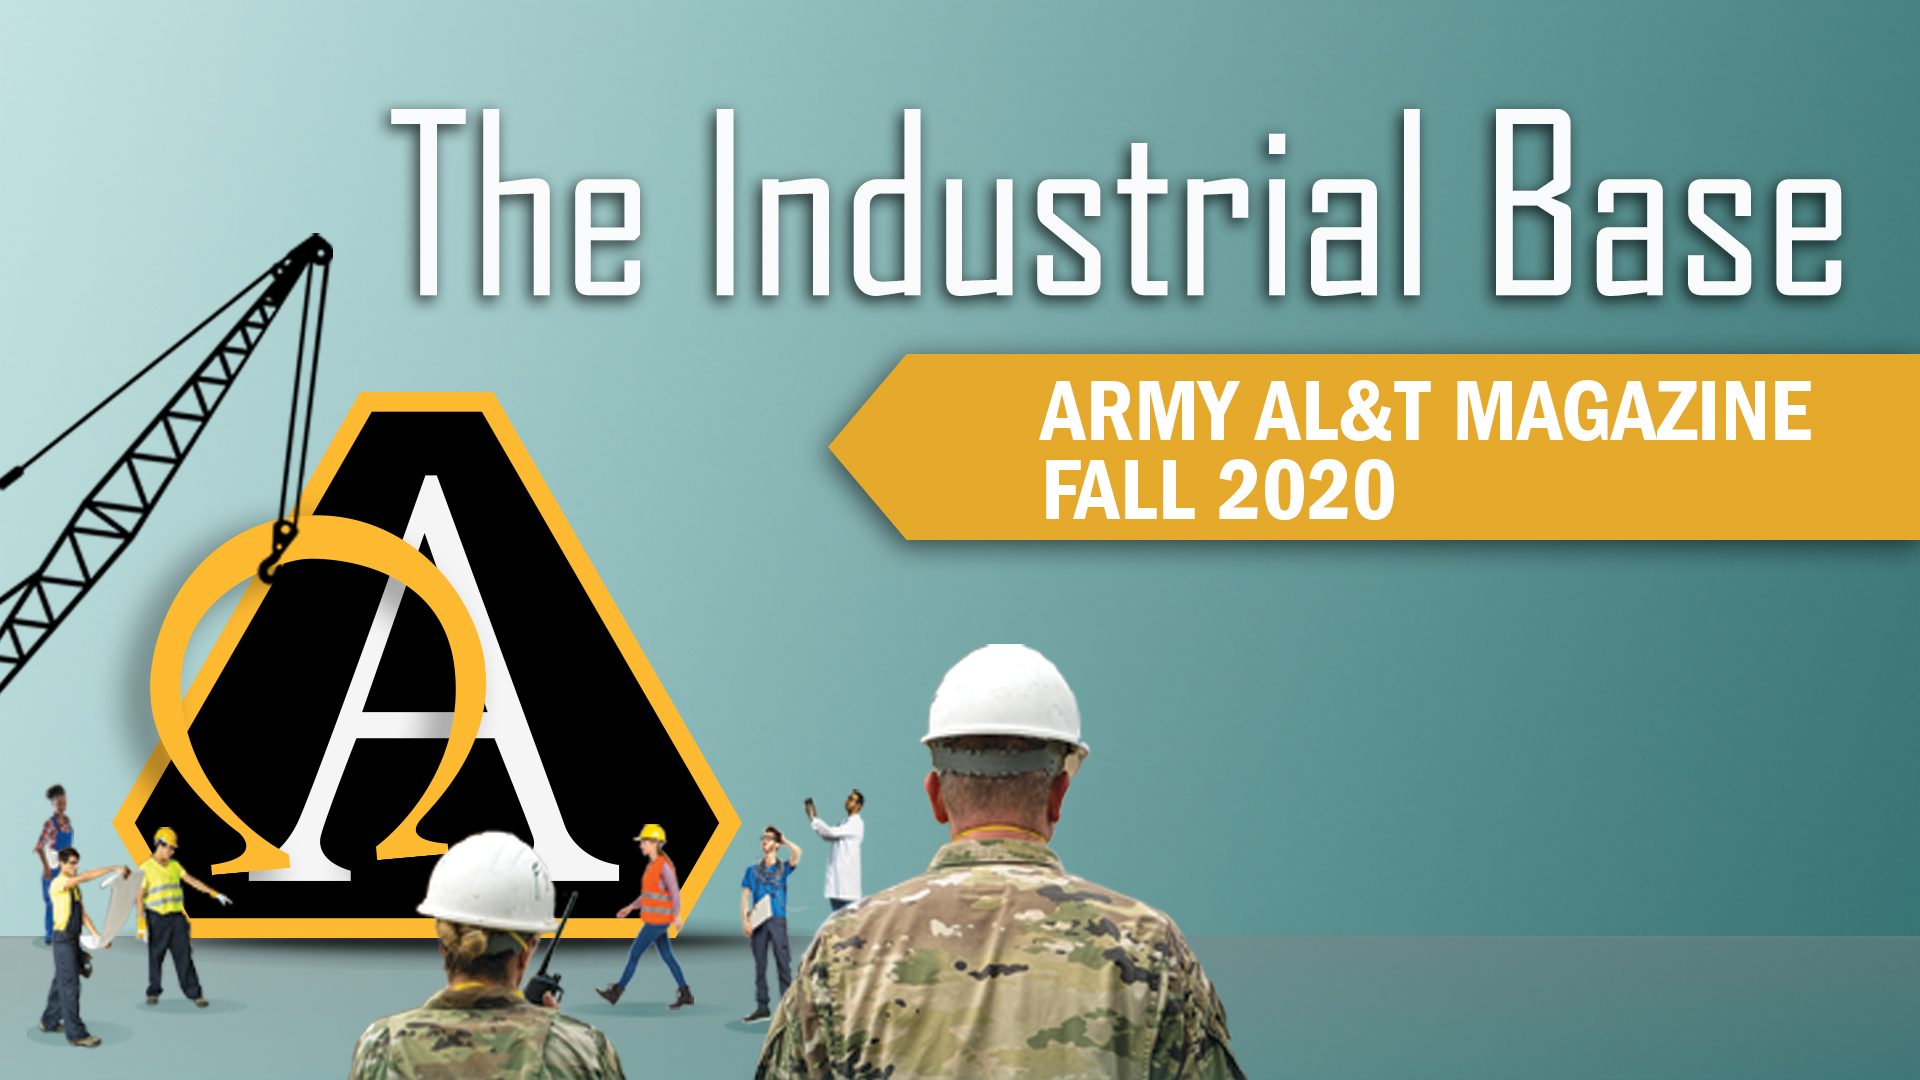 Fall 2020 Army AL&T Magazine